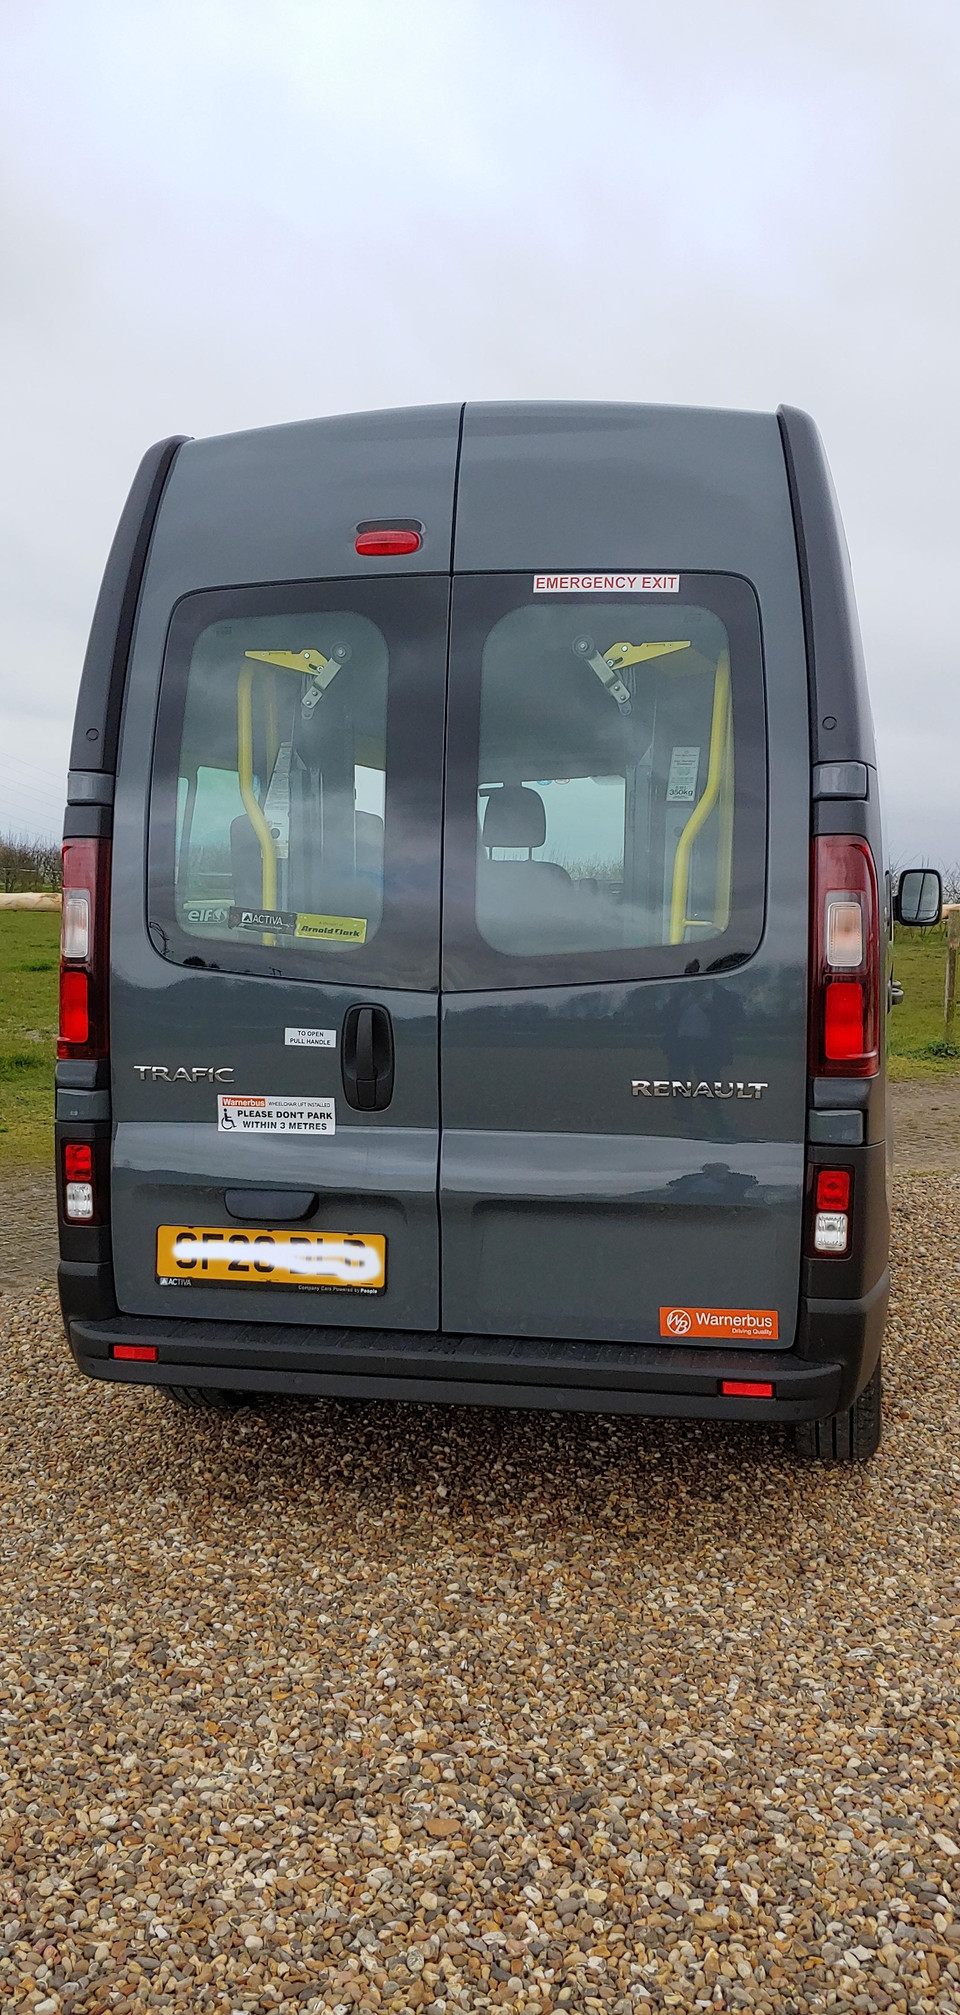 Renault Trafic Minibus conversion by Warnerbus